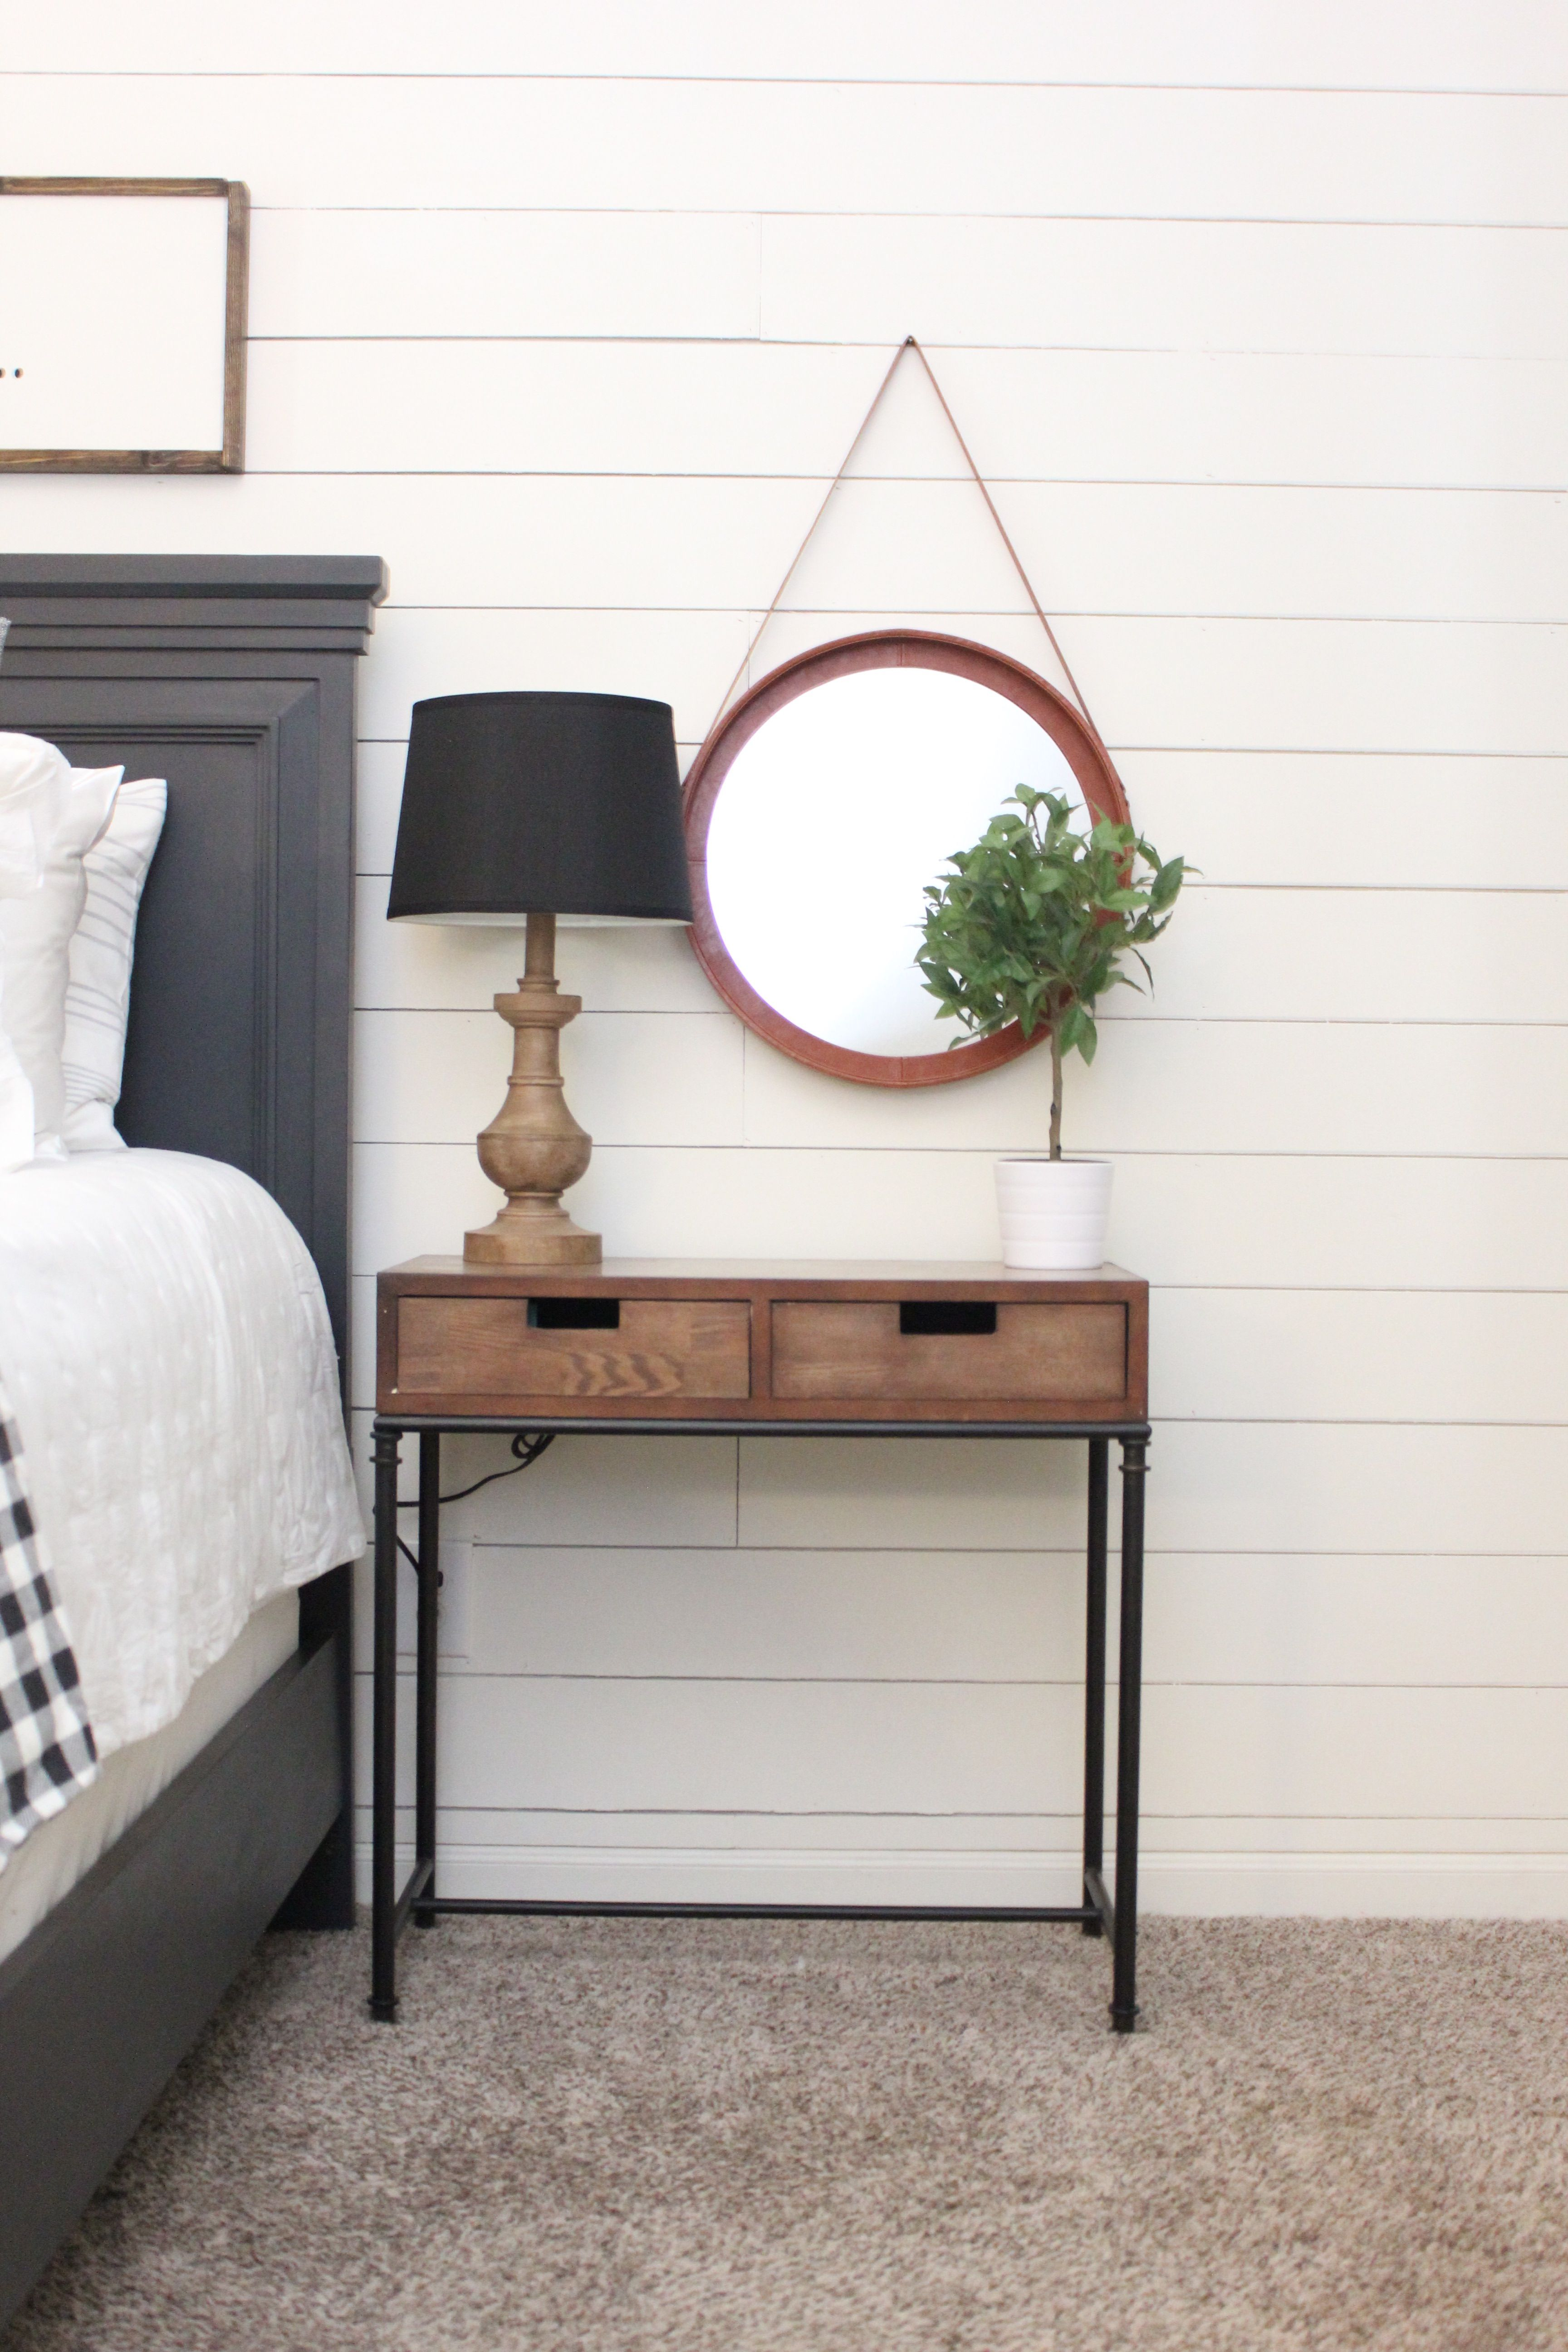 Decor Tip: a small mirror is a unique addition above any ... on Floor Mirrors Decorative Kirklands id=38605